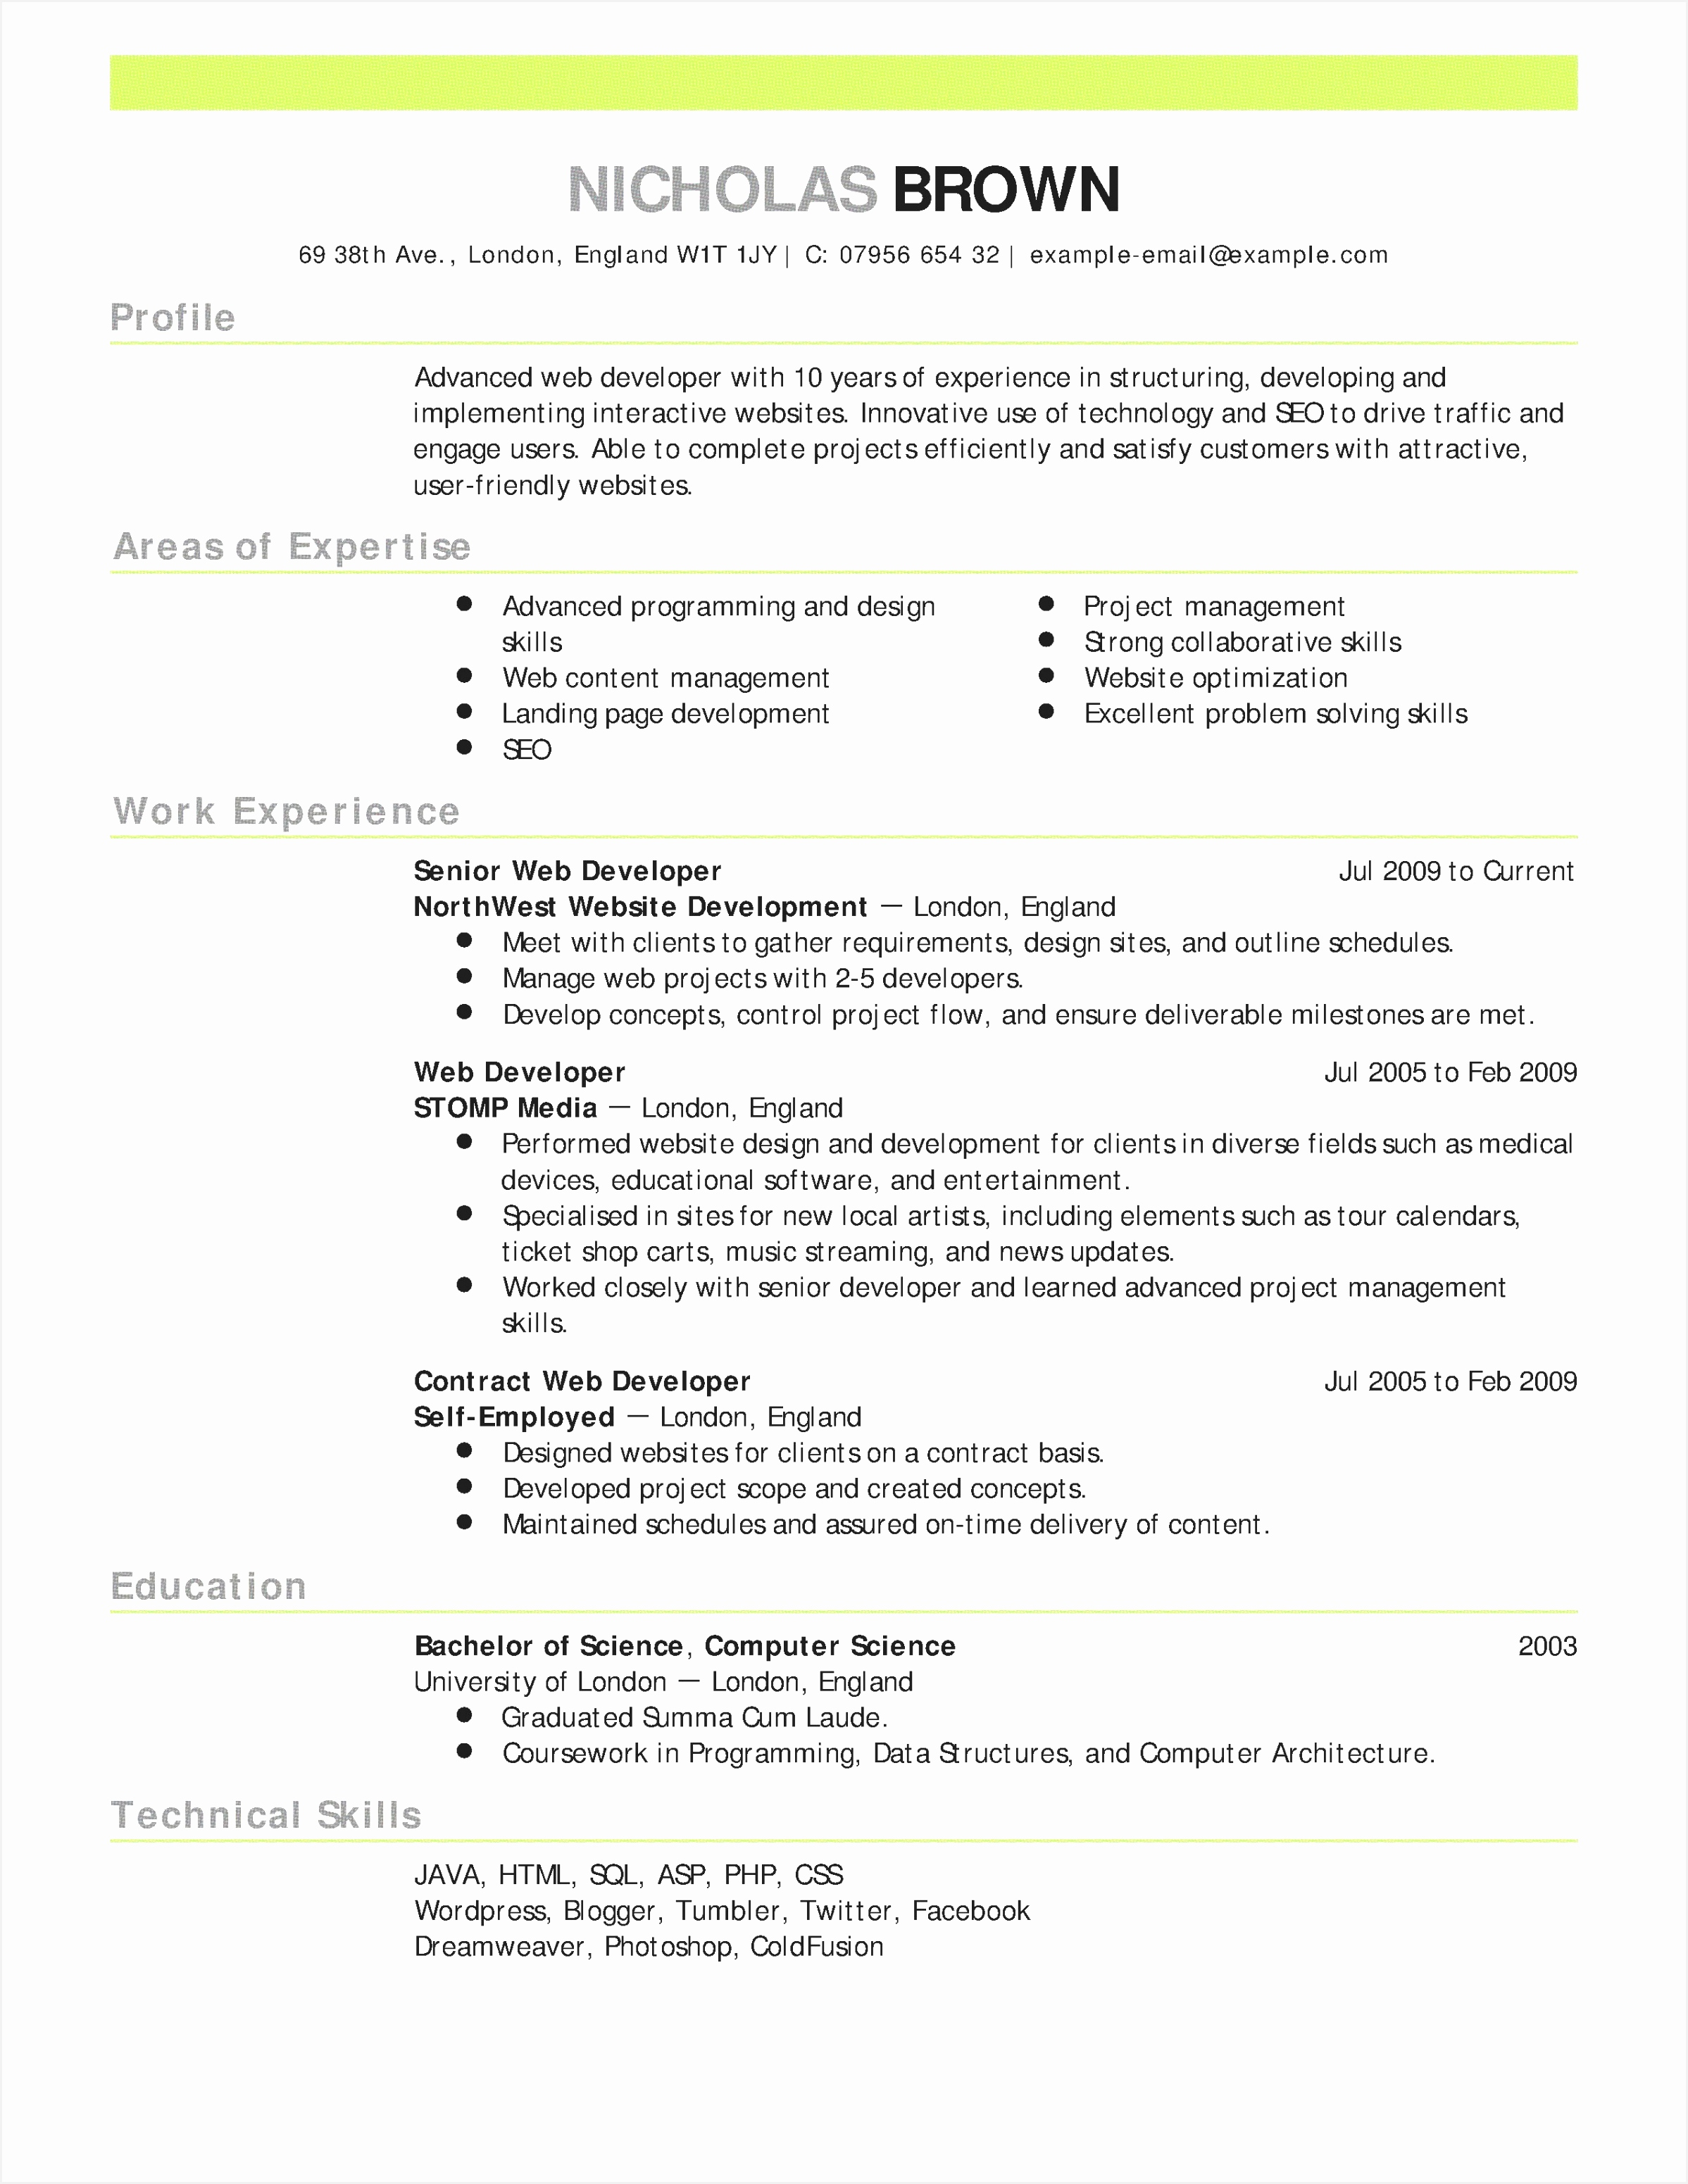 Resume Examples Bartender New Sample Bartender Resume Best What Is Resume Fresh Bsw Resume 0d 31022397nIlms